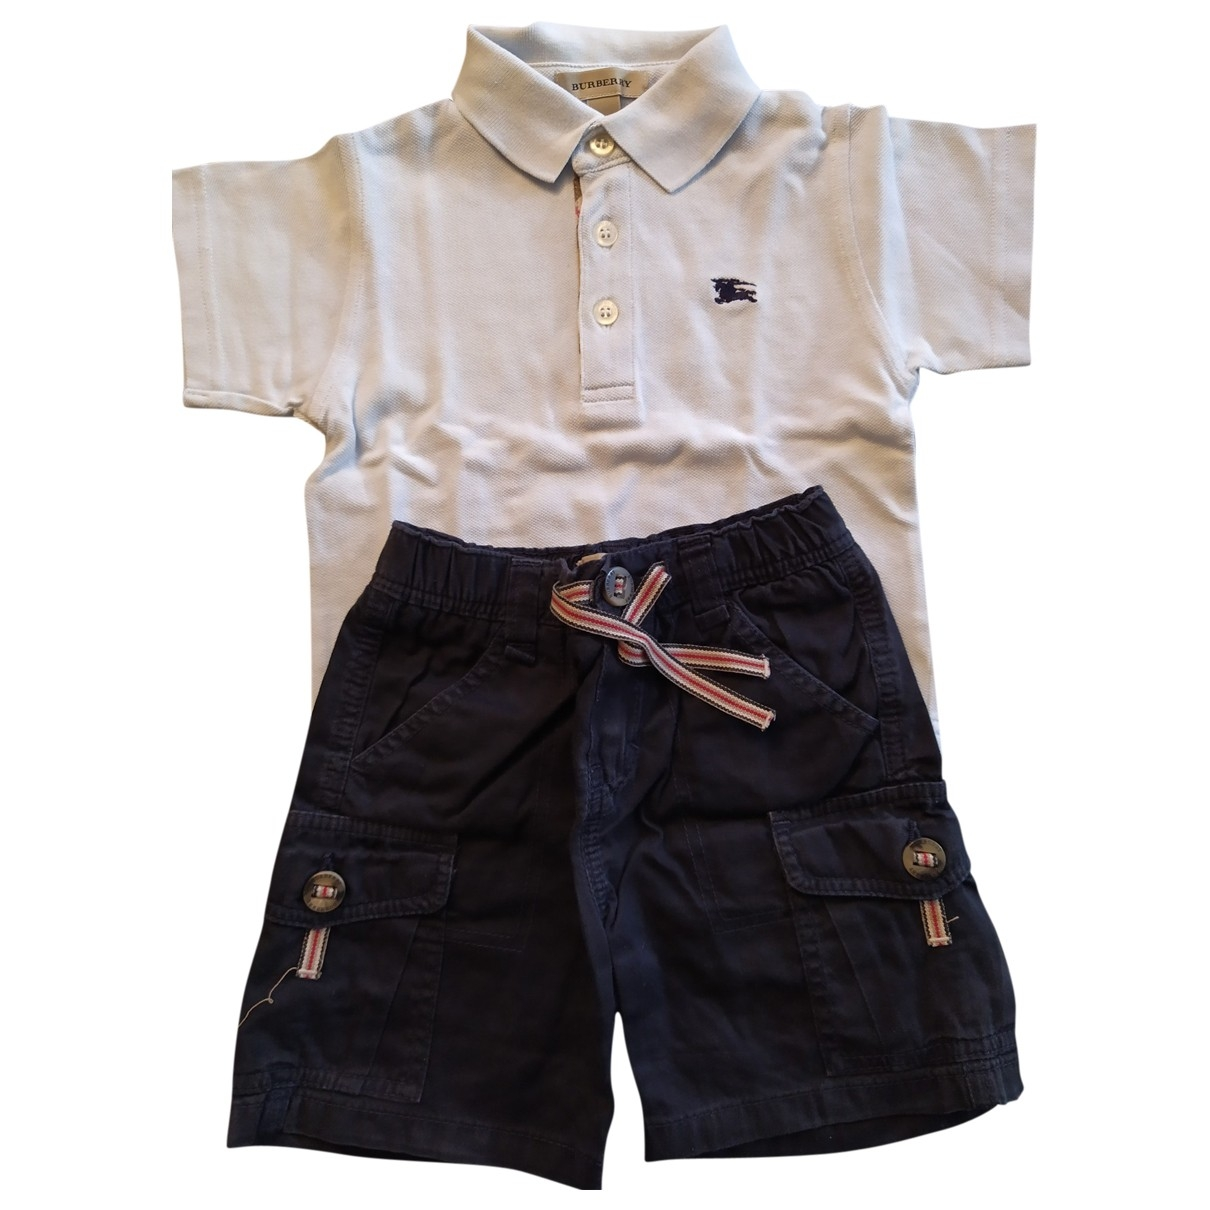 Burberry \N Cotton Outfits for Kids 12 months - up to 74cm FR